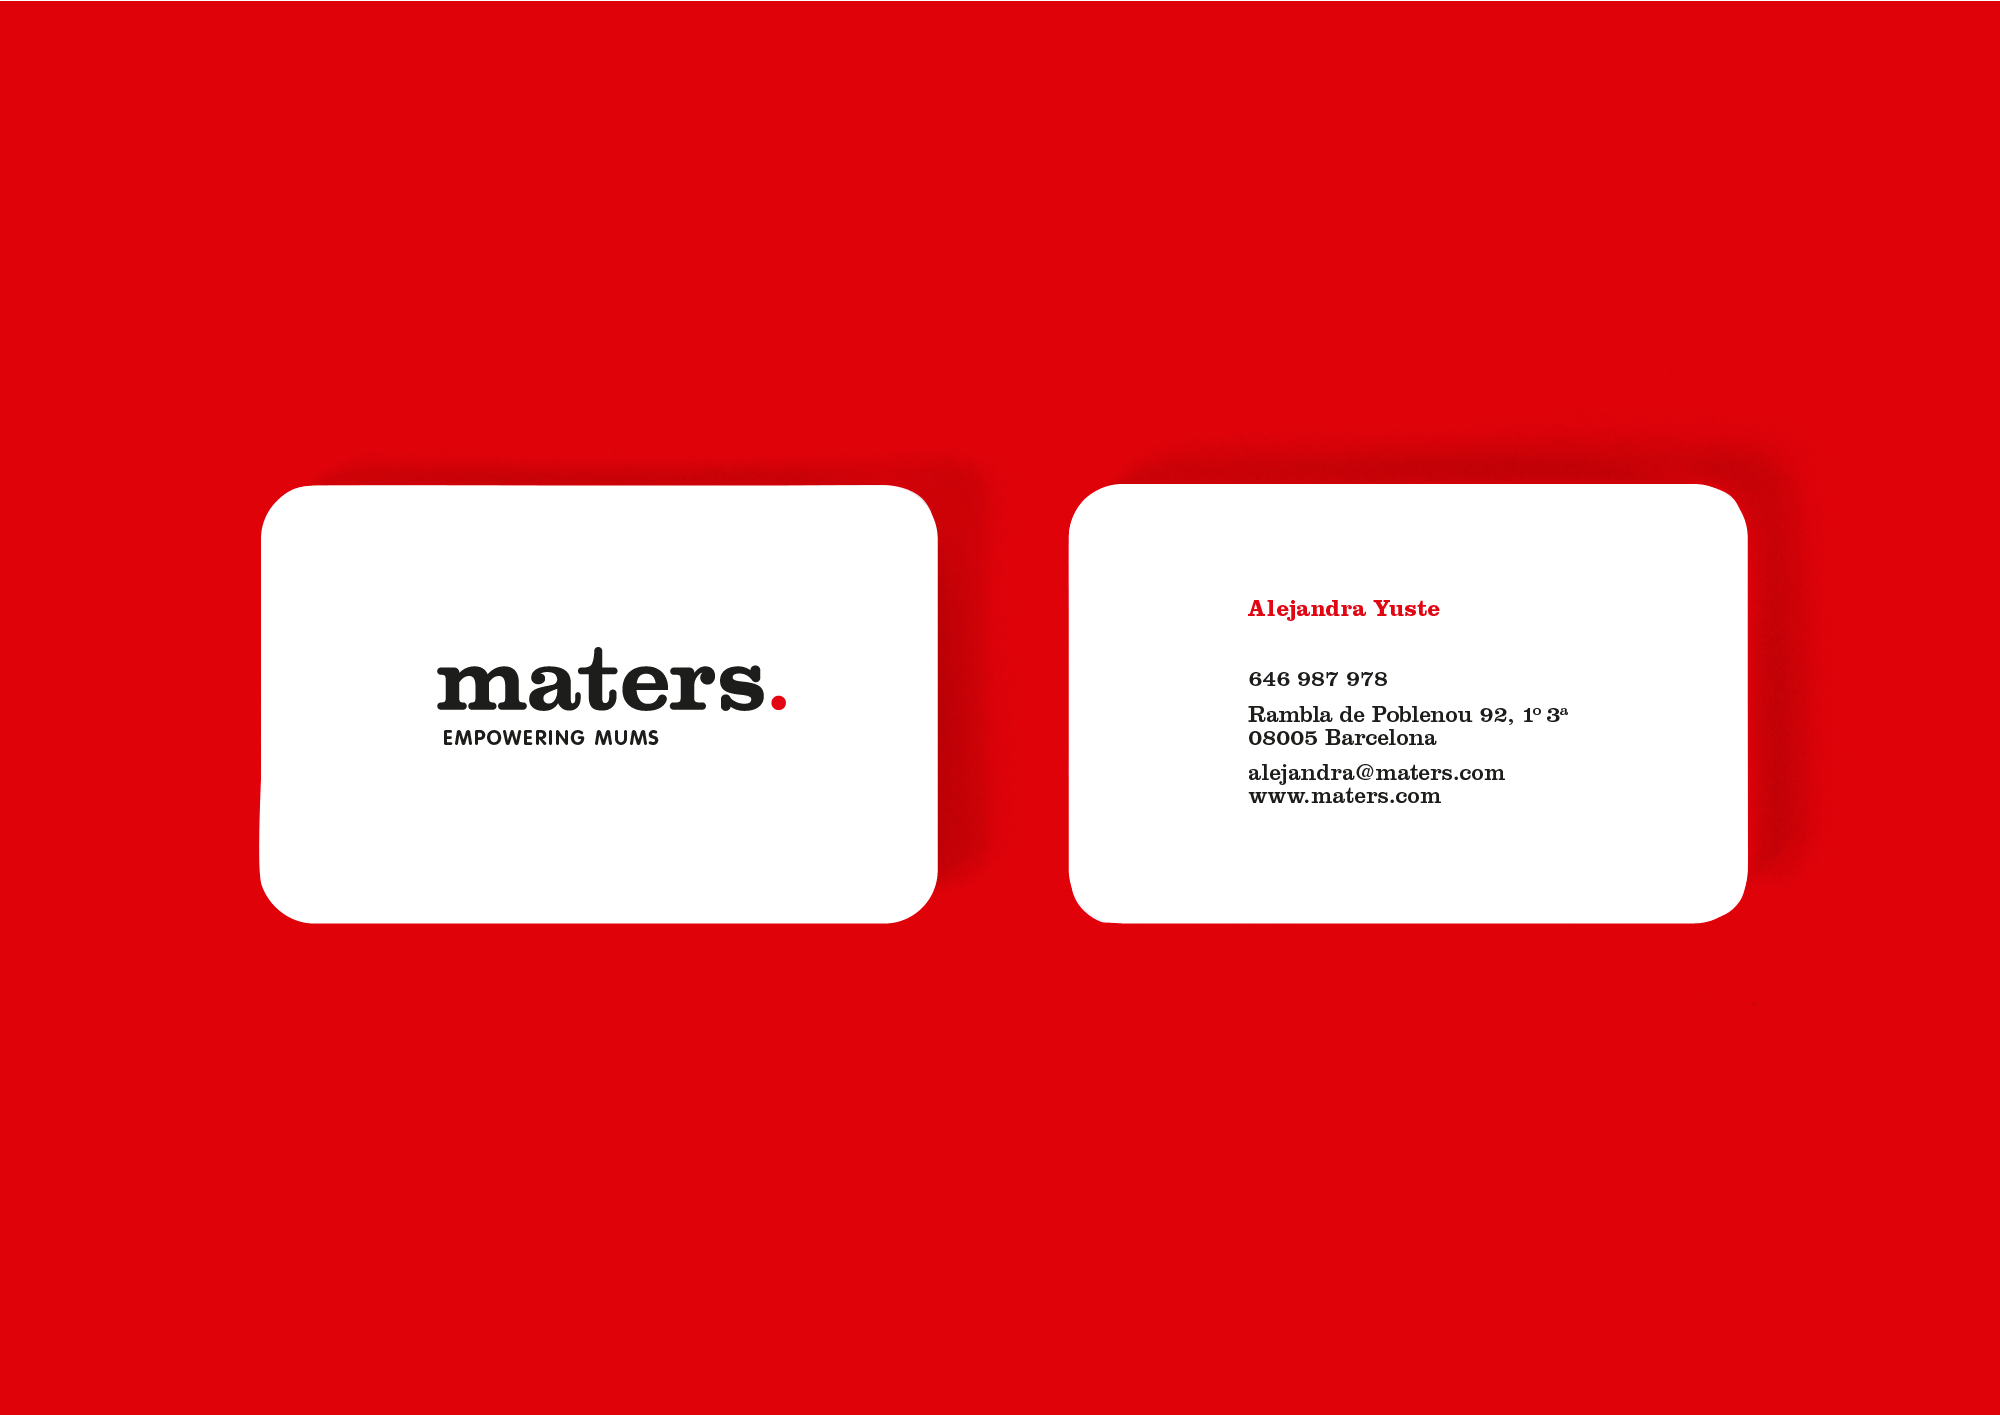 MATERS-WEB-09.png